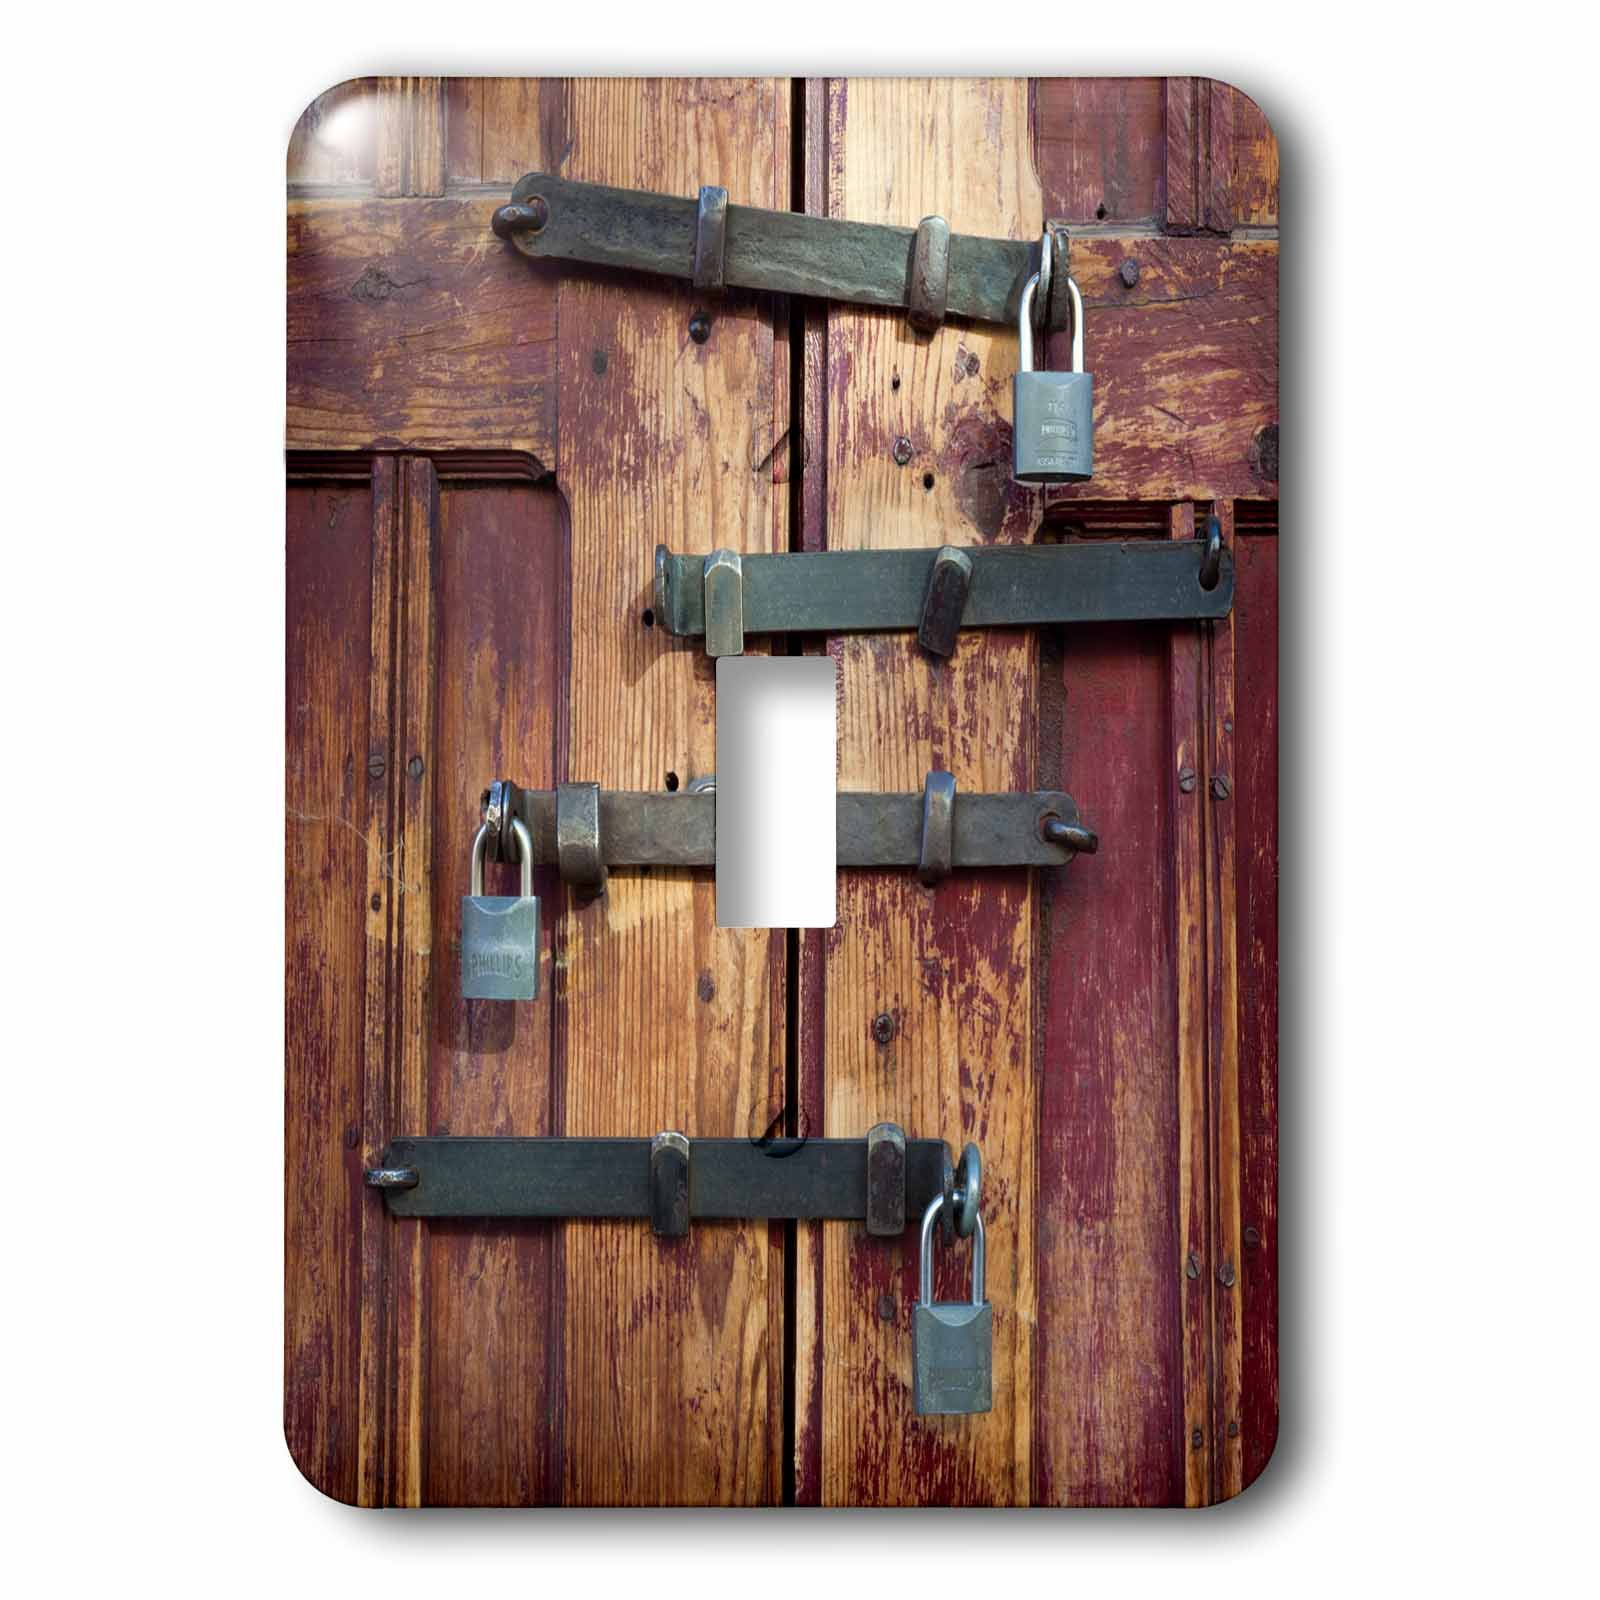 3dRose lsp_188399_1 Mexico, San Miguel De Allende. Detail Of Wooden Door with Four Locks. - single Toggle Switch